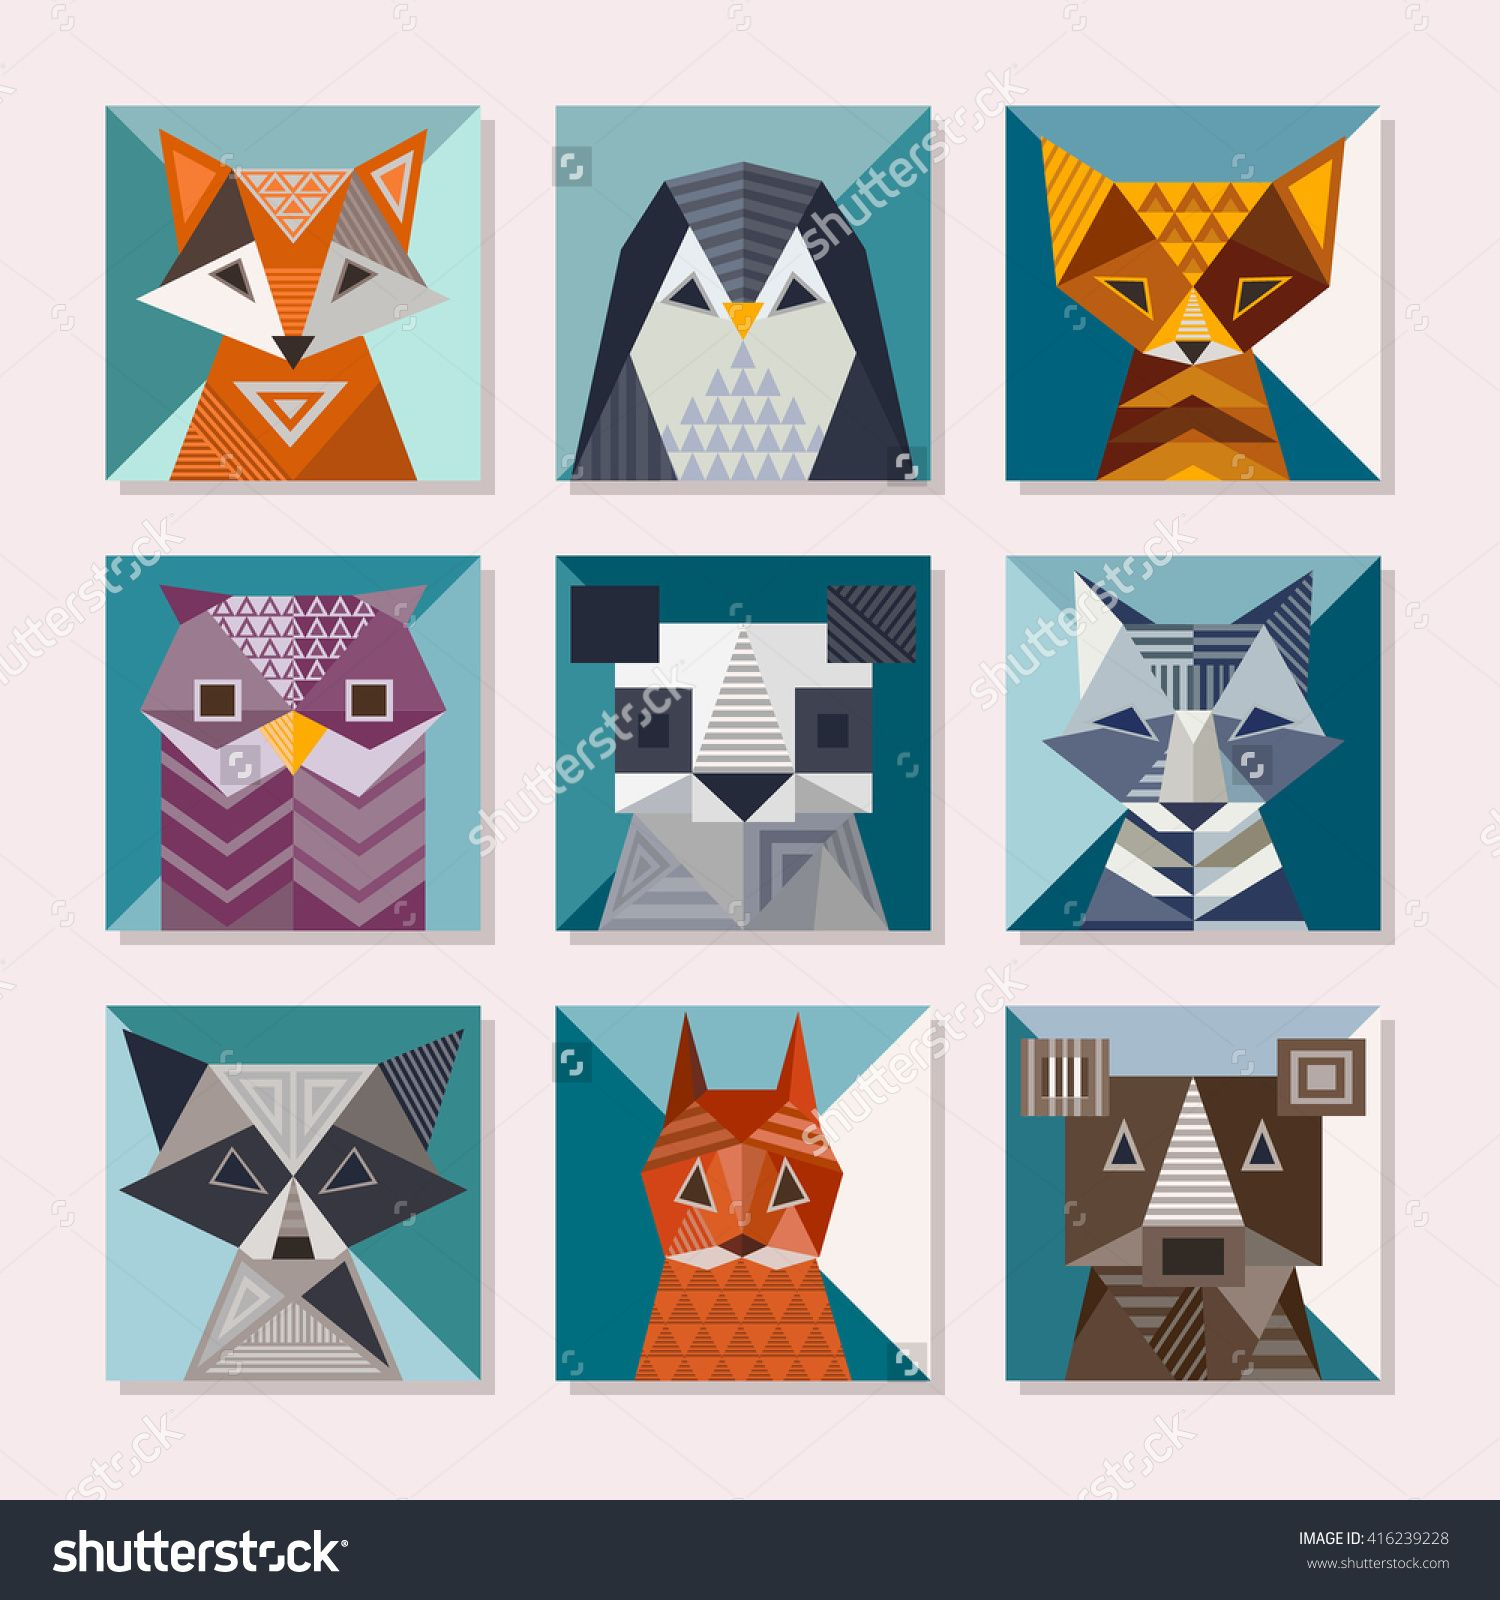 cute cards with geometric shapes fox penguin cat owl panda wolf bear raccoon squirrel and bear vector illustrations 416239228 shutterstock